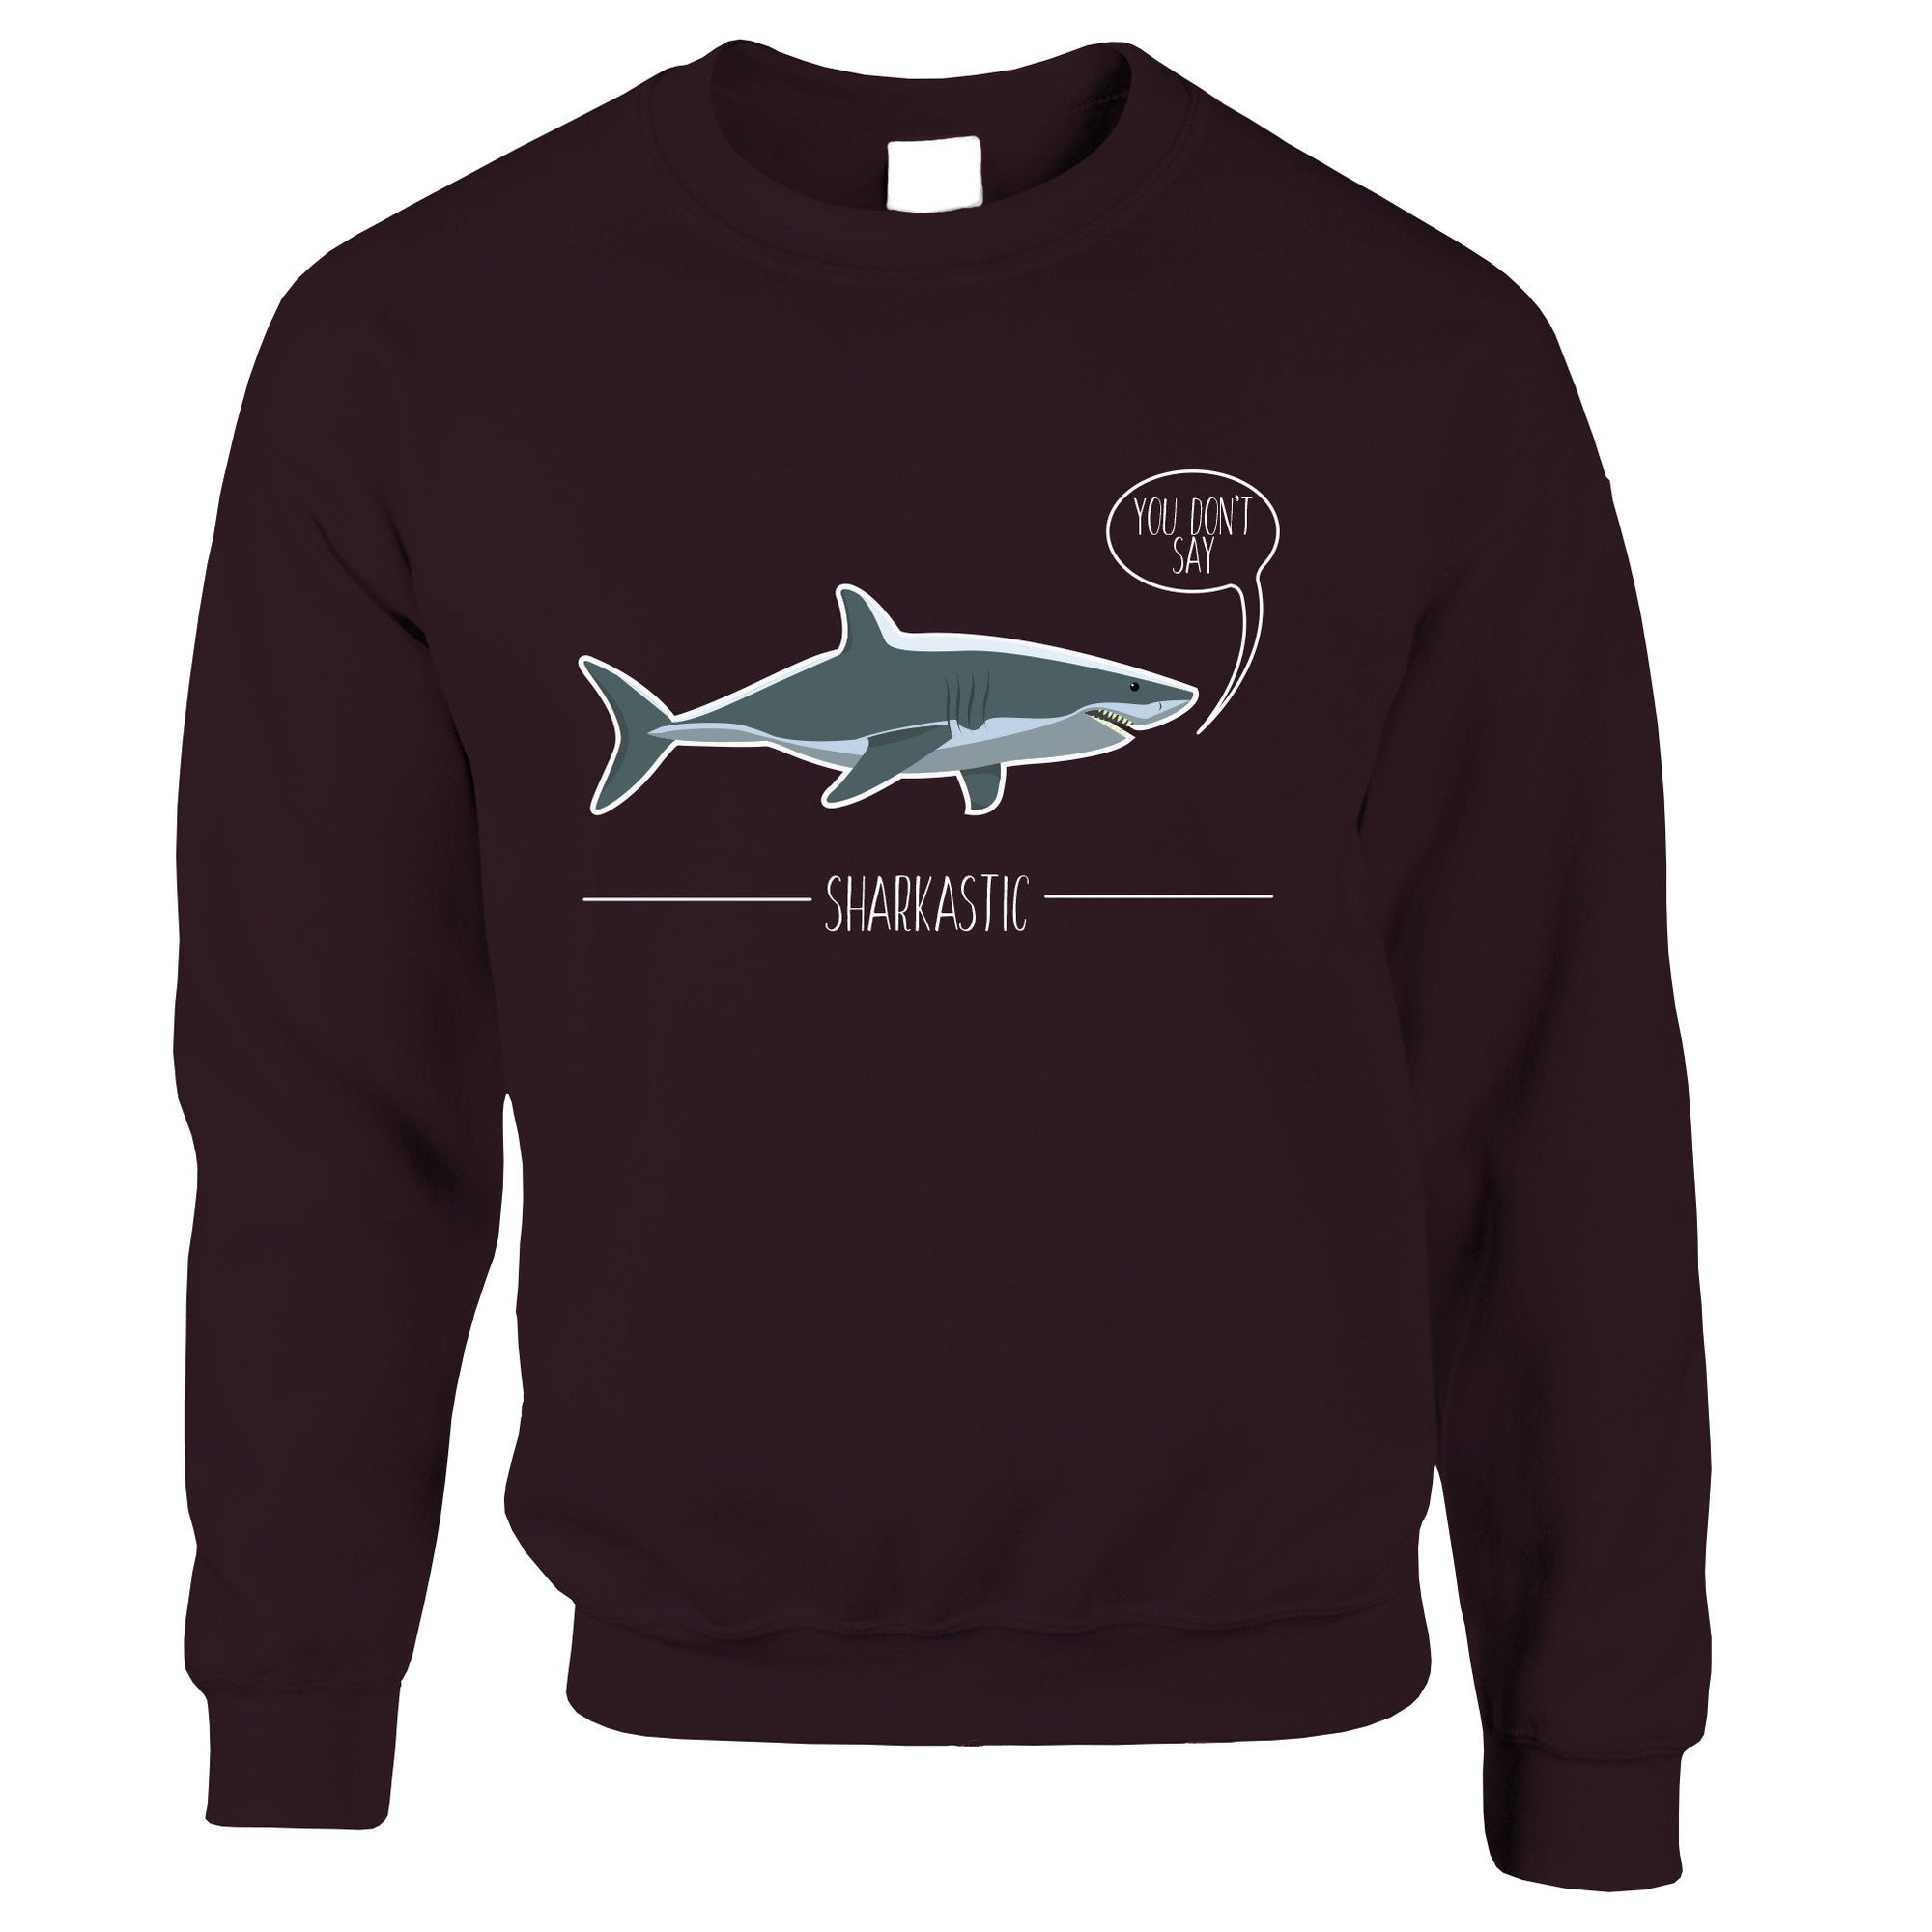 Shark Pun Jumper Sarcastic Sharkastic Joke Sweatshirt Sweater